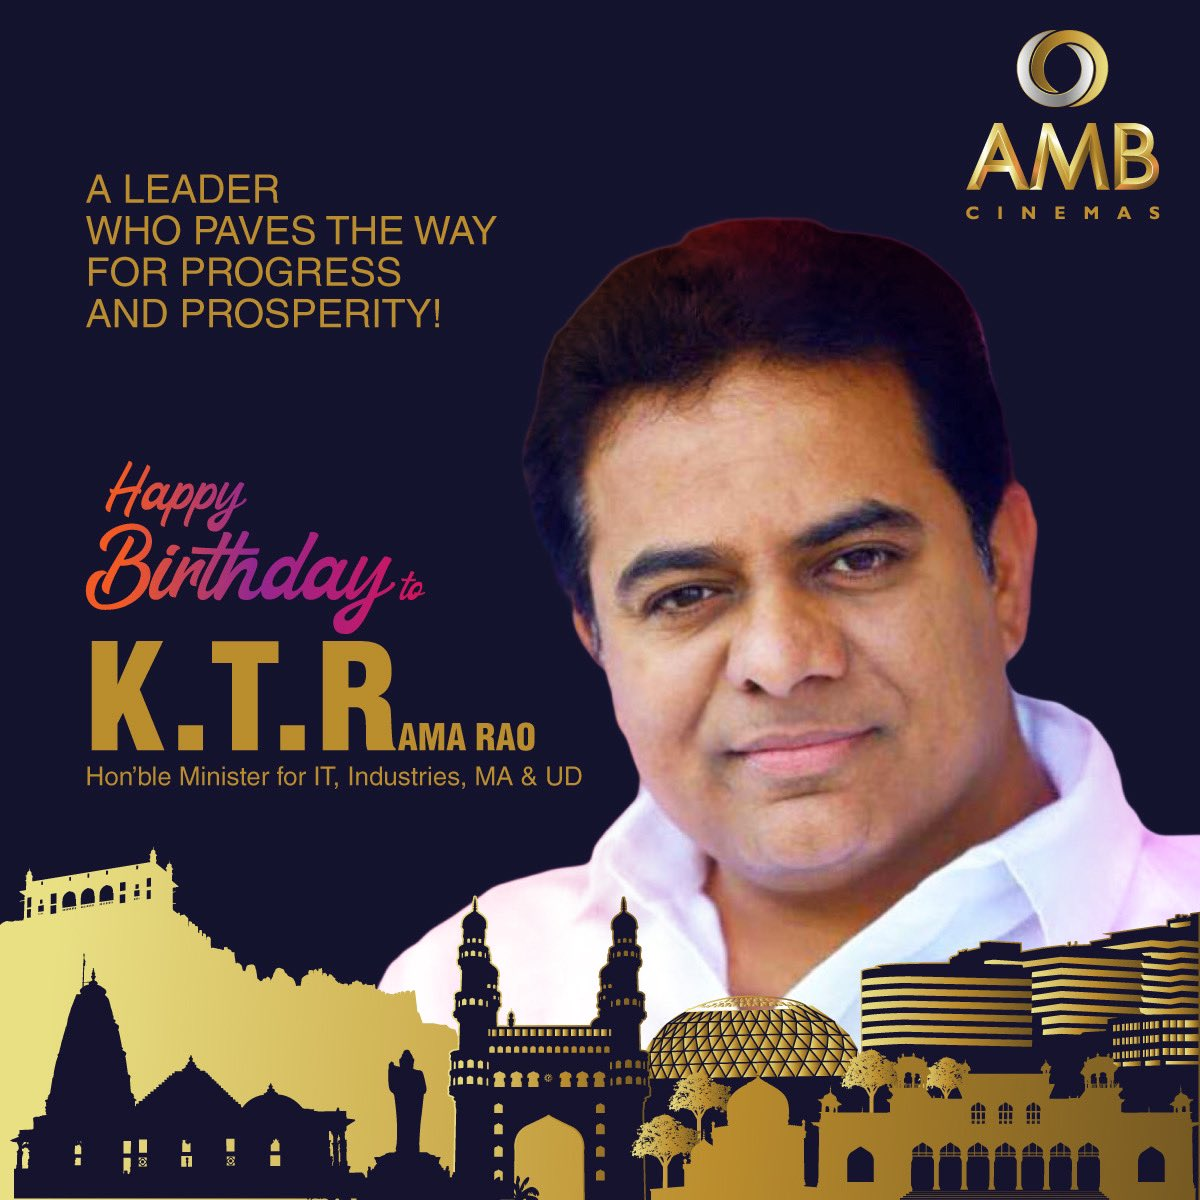 AMB Cinemas wishes a Youth Icon and Dynamic Leader K.T. Rama Rao garu (@KTRTRS) a Happy Birthday! Thank you sir for being an inspiration for progress and prosperity! 😃 #HappyBirthday #KTRamaRao #KTRGaru #Leader #YouthIcon #Inspiration #Progress #Prosperity #AMBCinemas